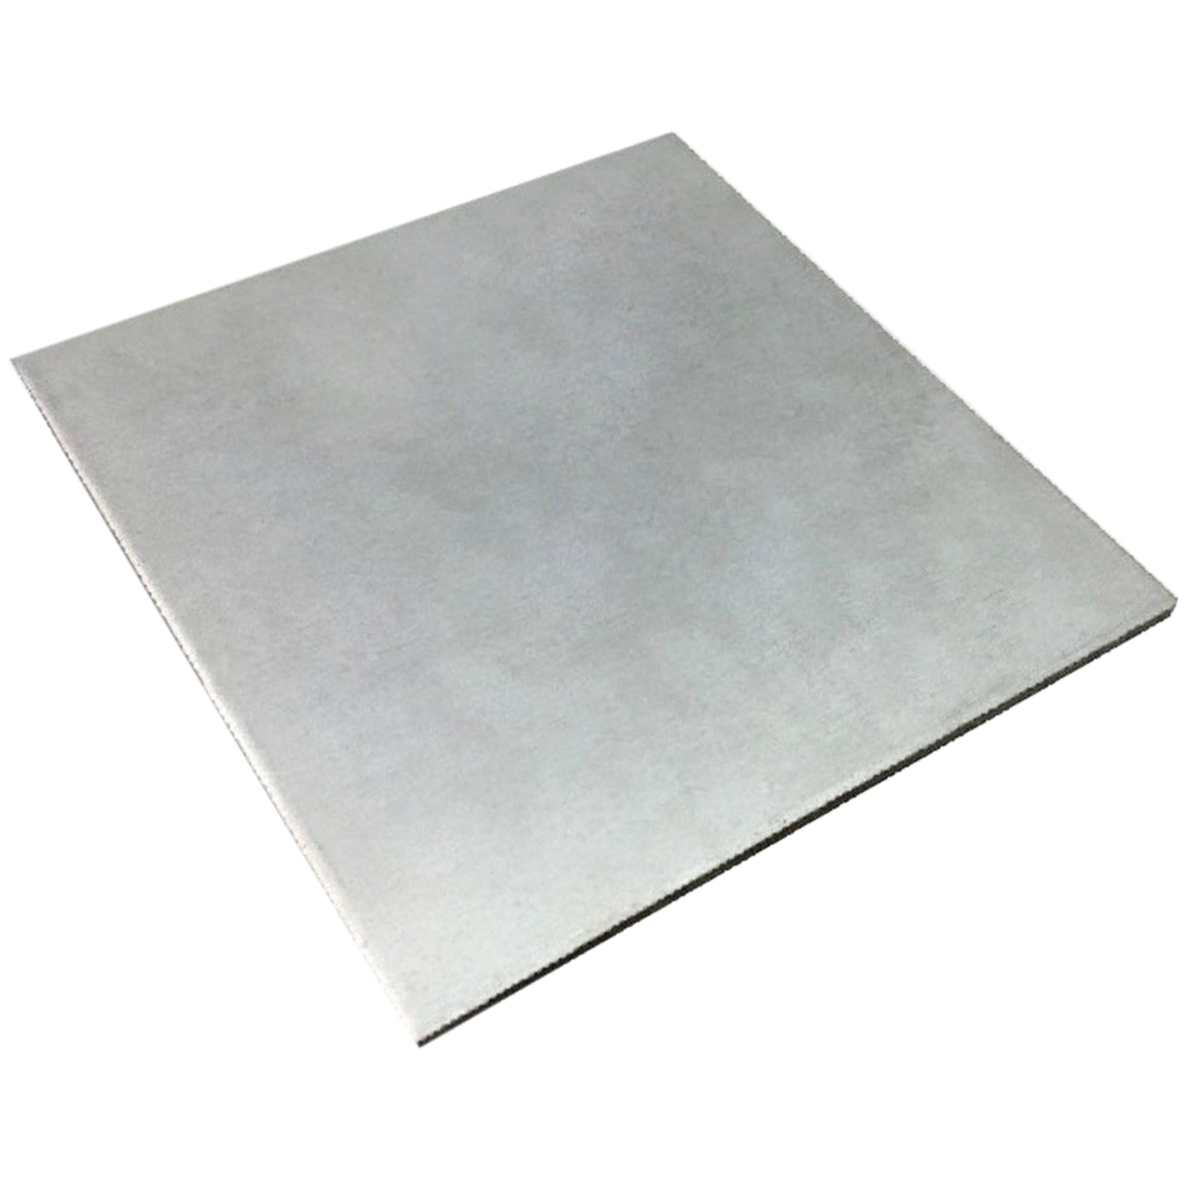 1pc High Purity Metal Thin Titanium Plate 0.5mm Thickness TC4/GR5 ASTM B54 Ti Sheet Foil 100mmx100mm tungsten sheet plate for scientific research and experiment high purity